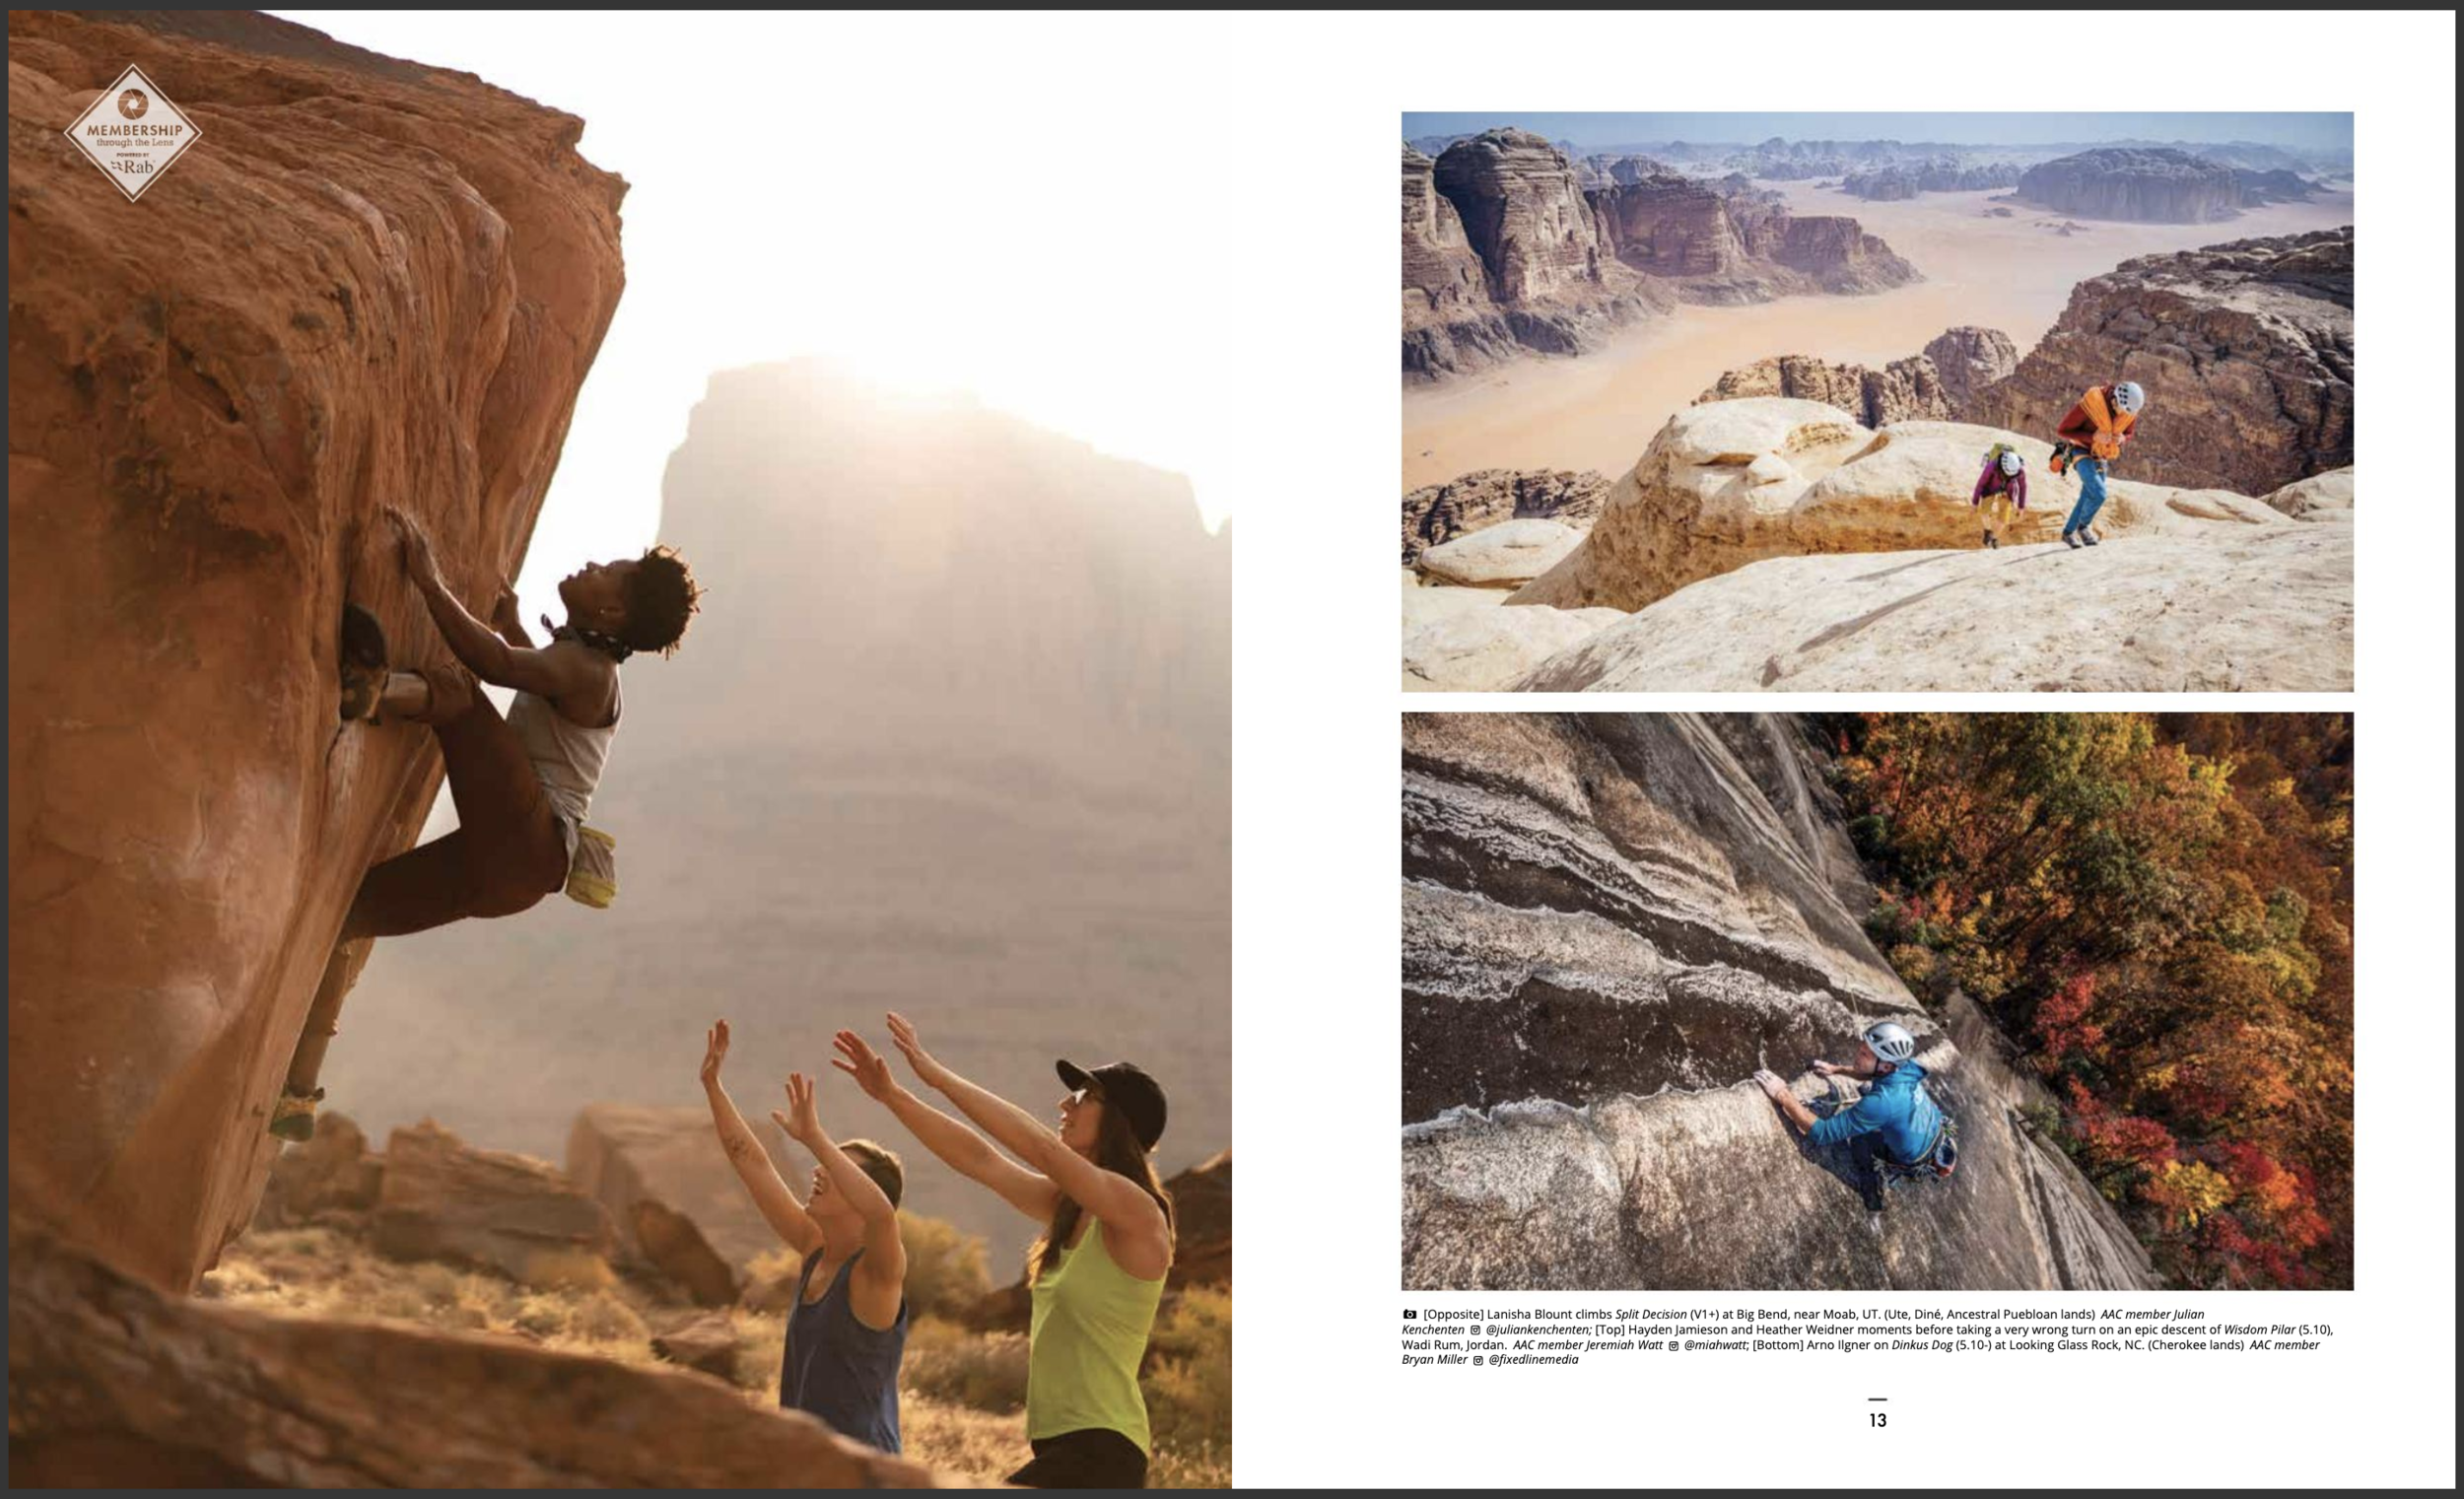 The American Alpine Club's Guidebook to Membership 2019 (left photo)